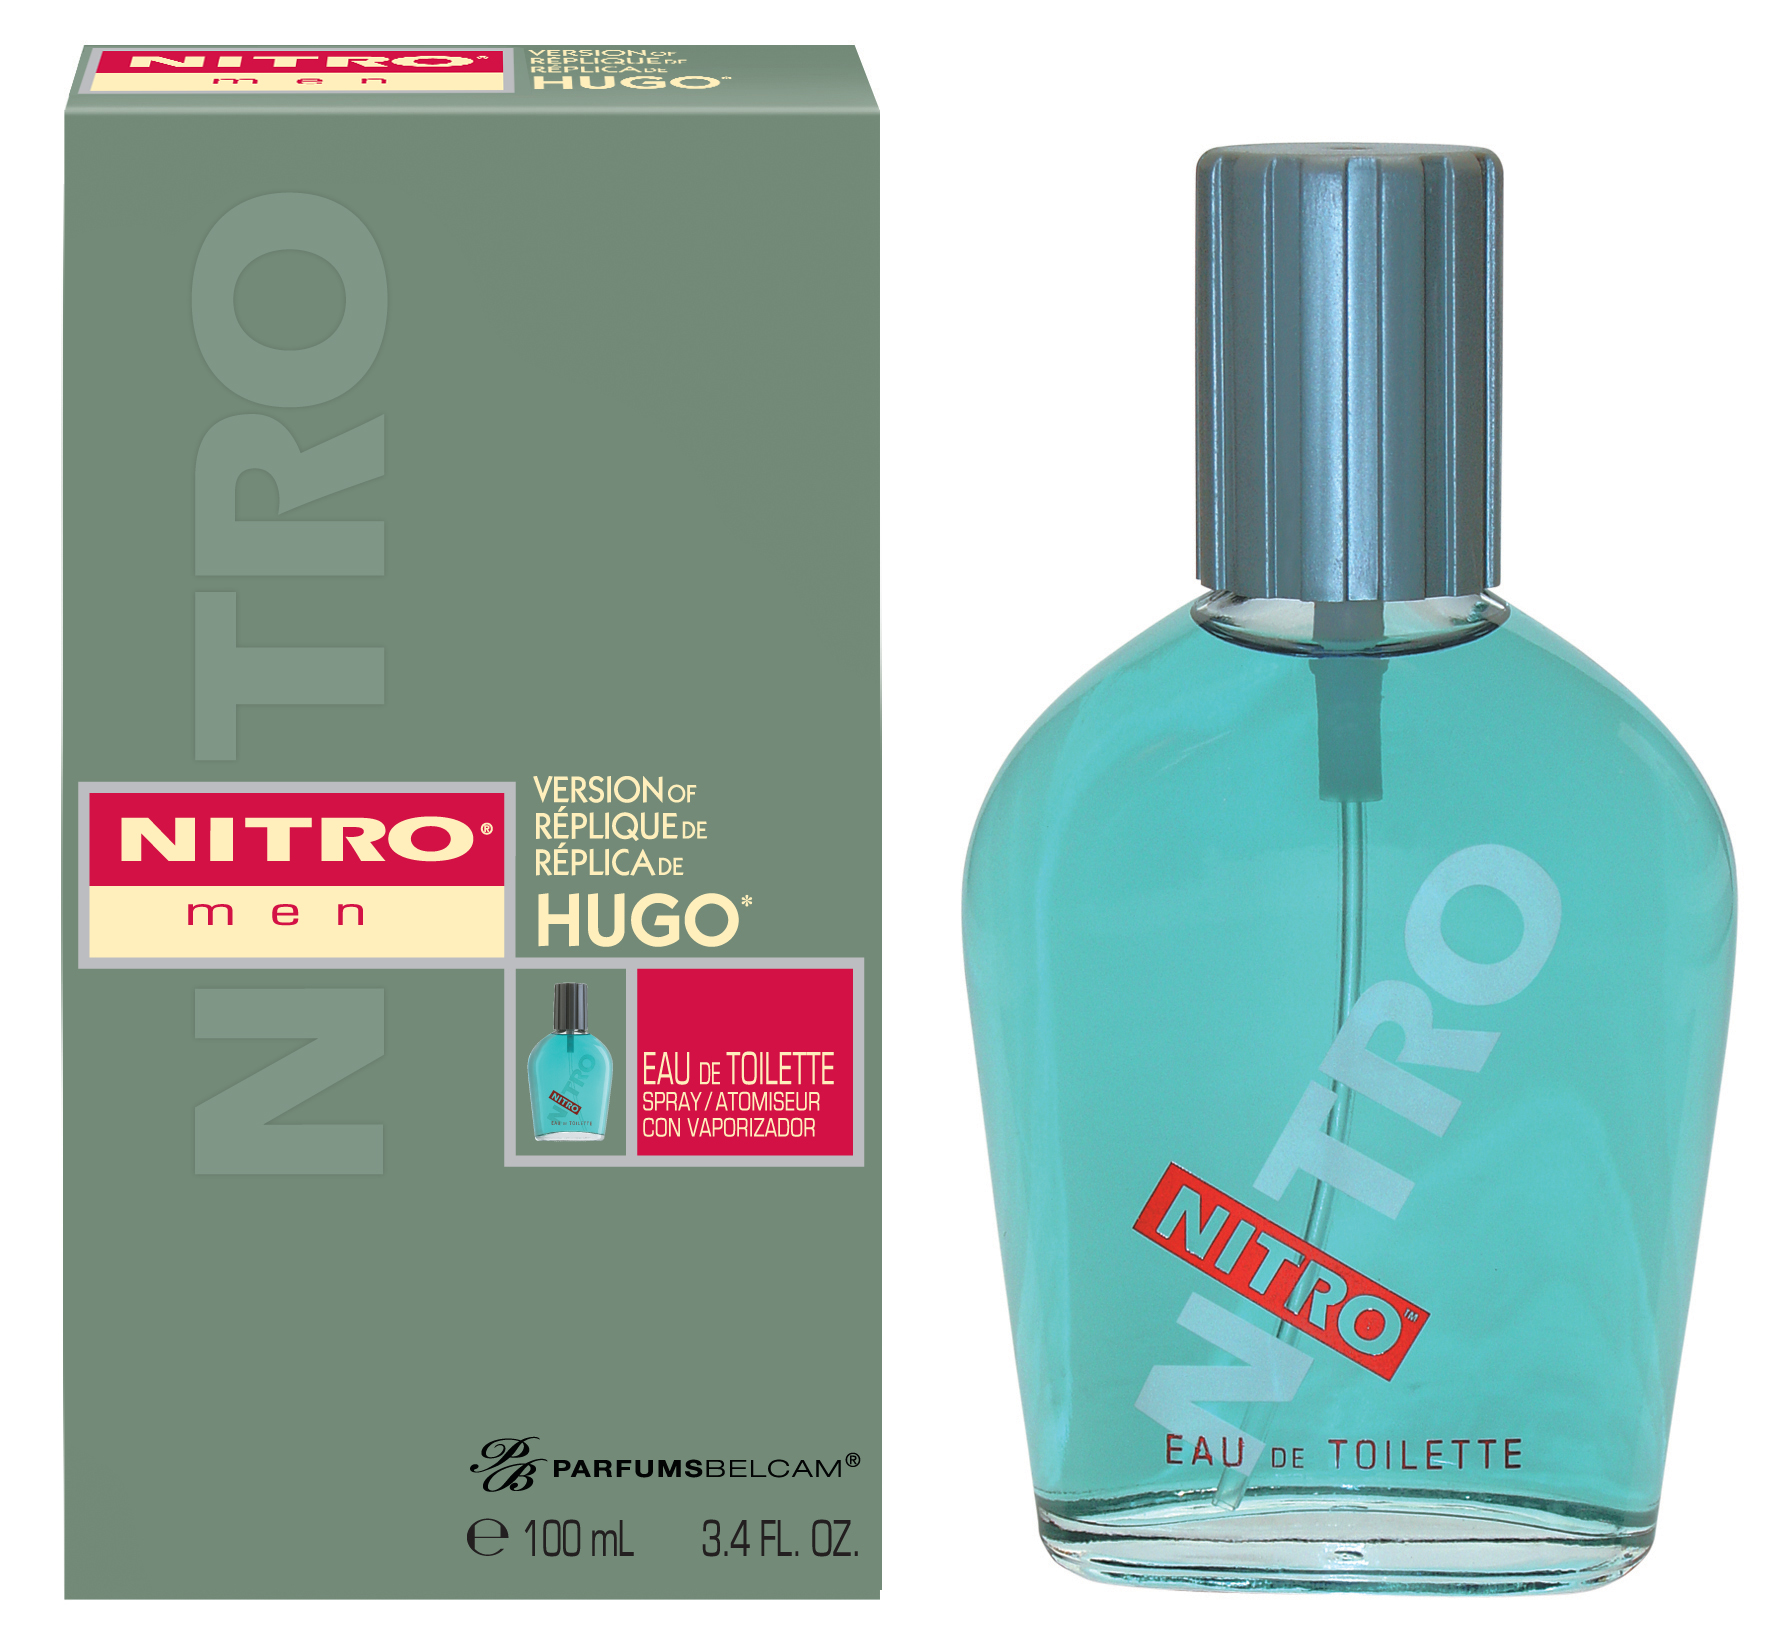 Nitro, version of Hugo*, by PB ParfumsBelcam, Eau de Toilette for Men, 3.4 oz